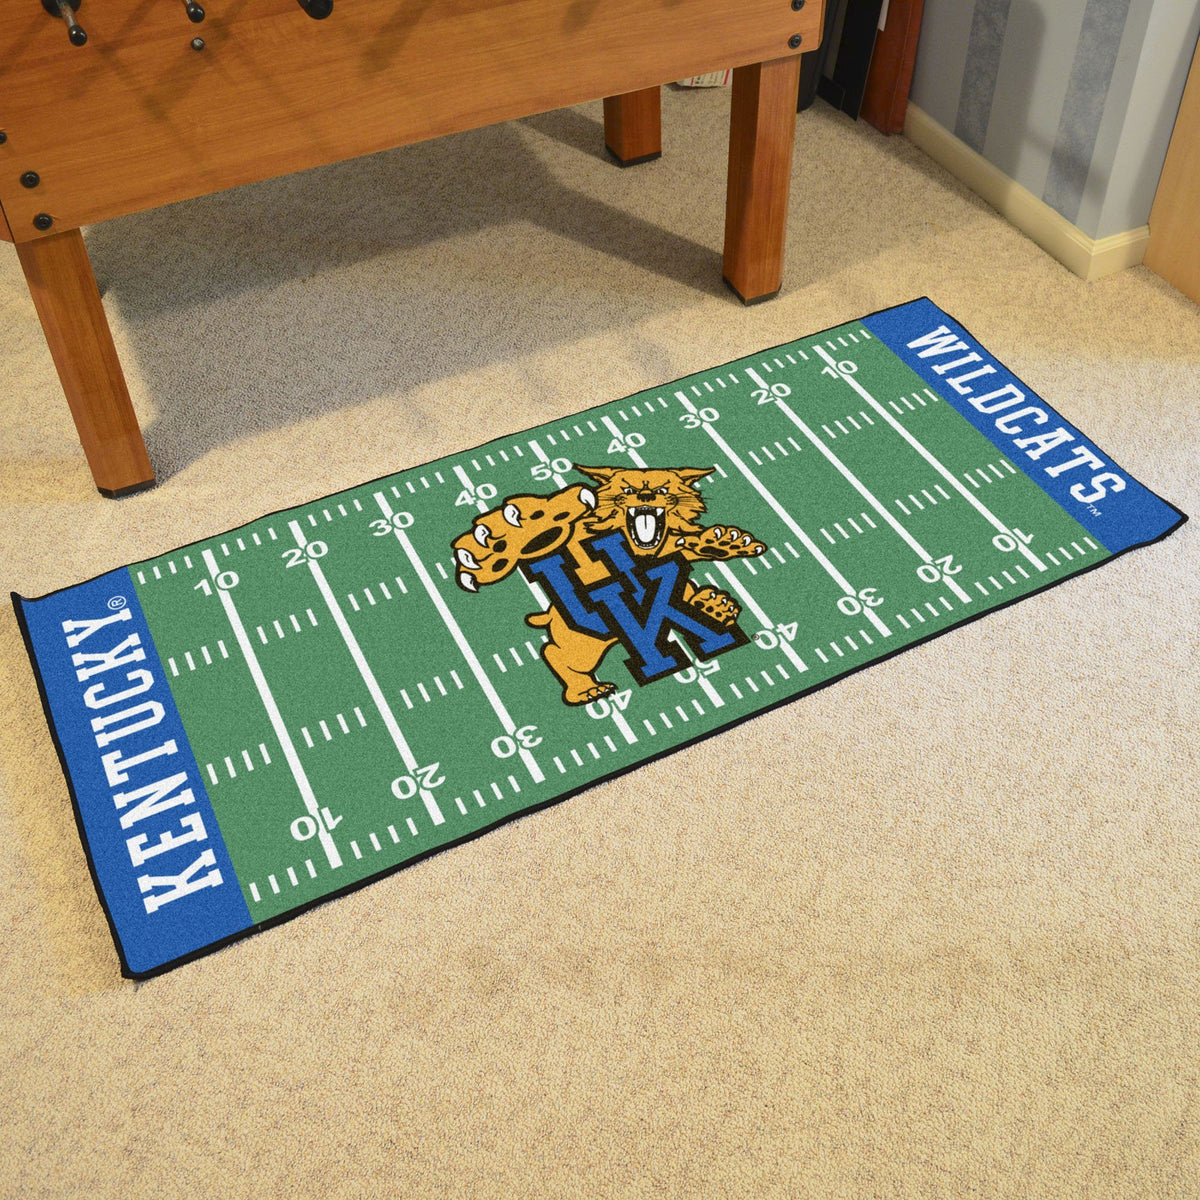 Collegiate - Football Field Runner Collegiate Mats, Rectangular Mats, Football Field Runner, Collegiate, Home Fan Mats Kentucky